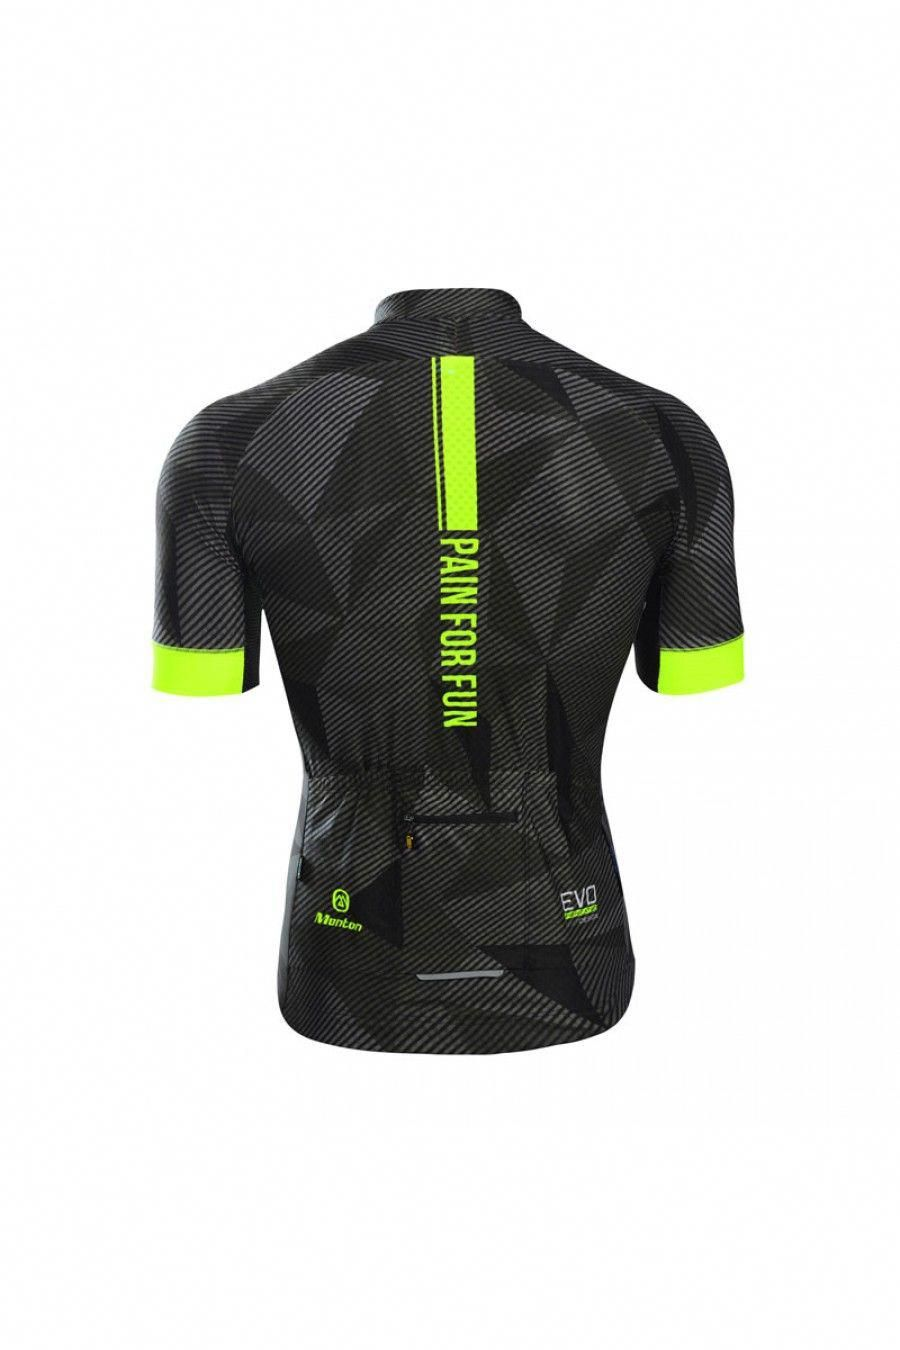 Types Of Bikes With Images Cycling Outfit Cycling Jersey